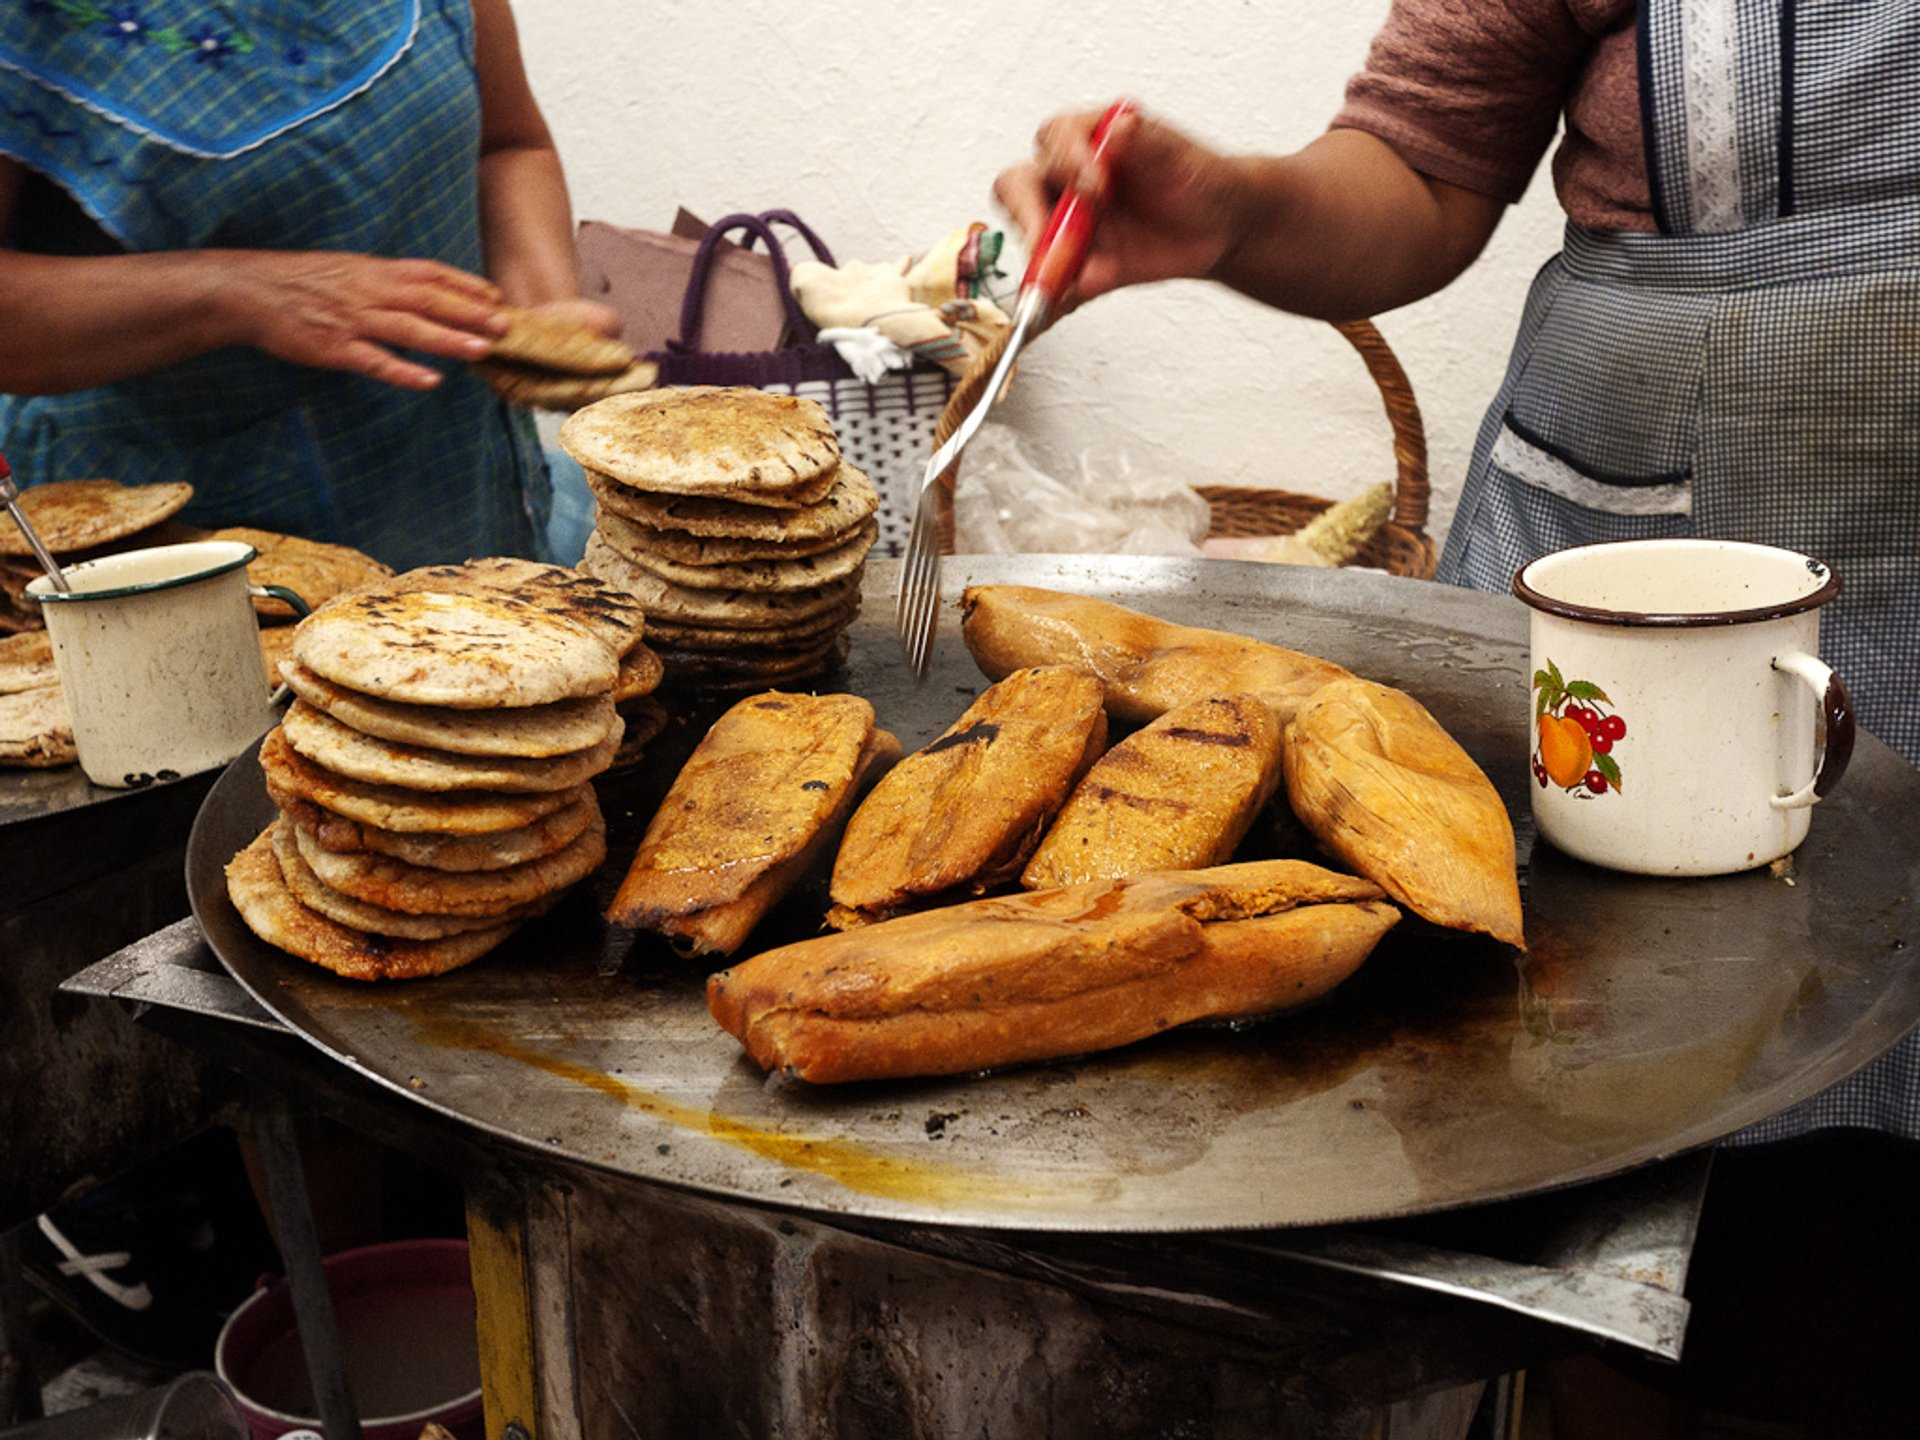 Tamales in Tequisquiapan, Mexico 2019